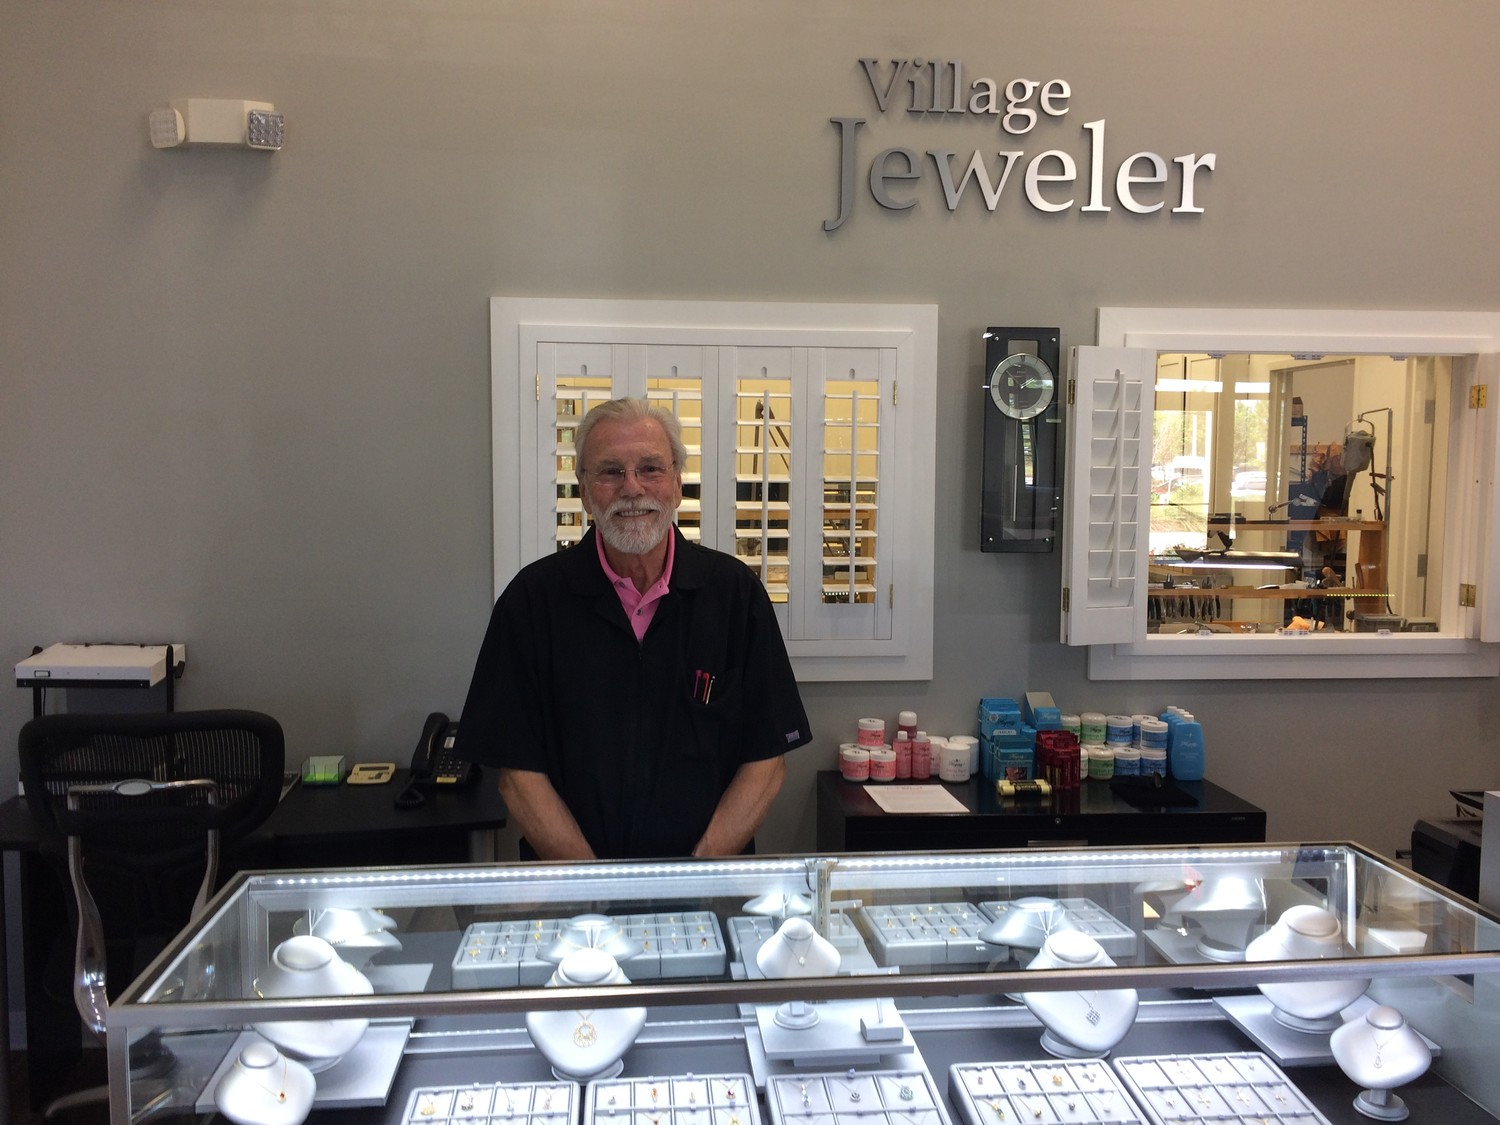 Village Jeweler owner Richard Felder